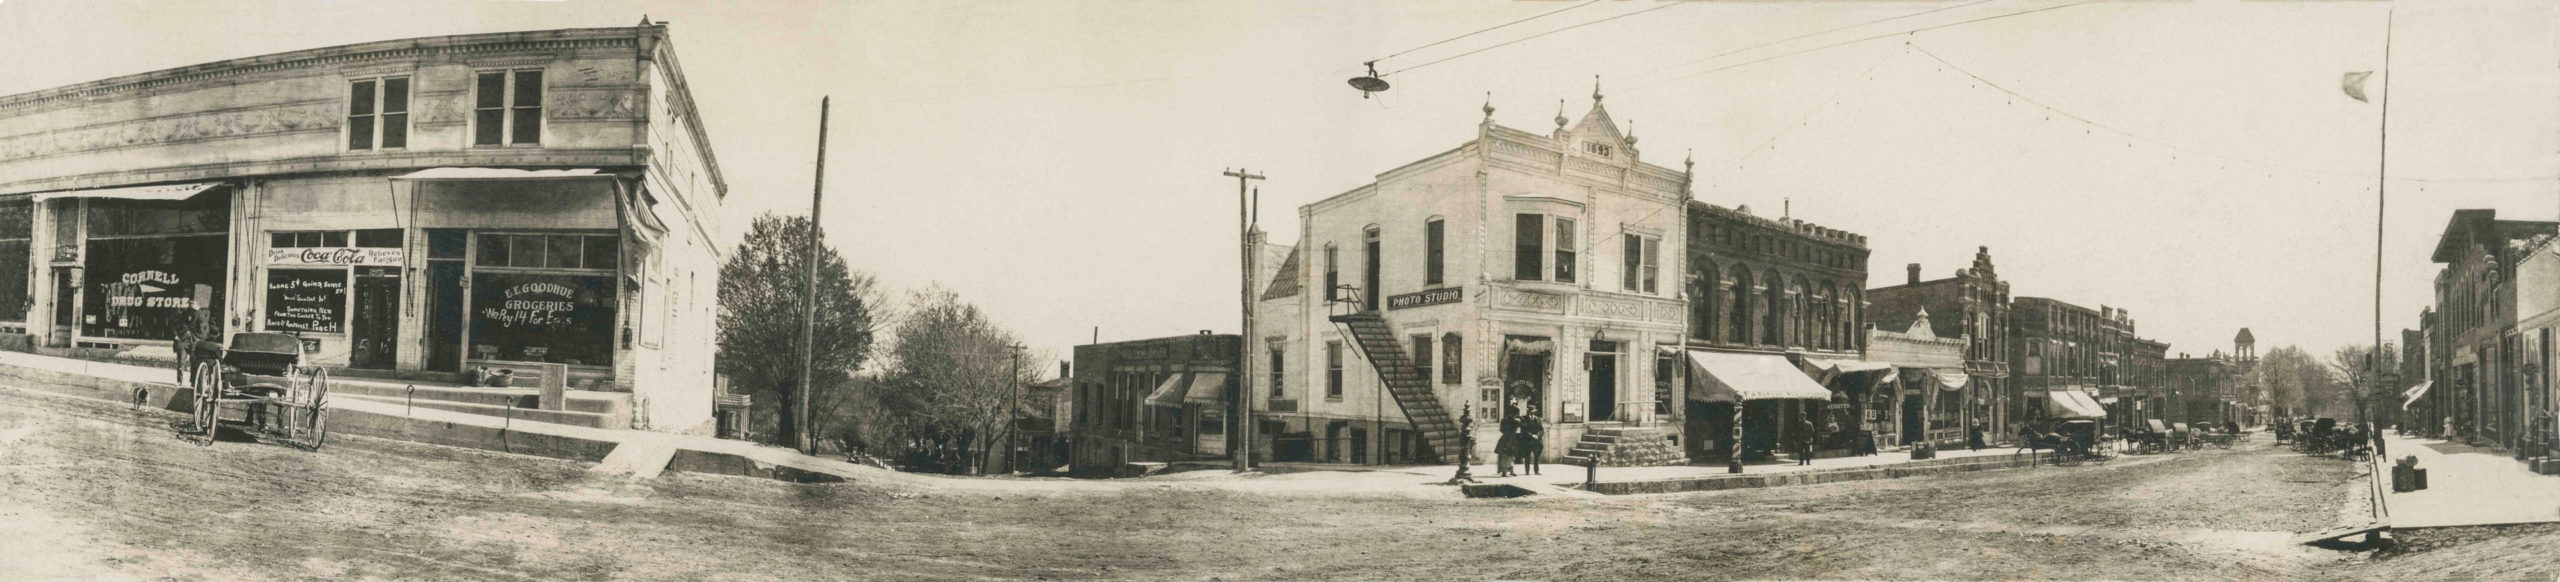 Photo of Downtown @ 1895-1898